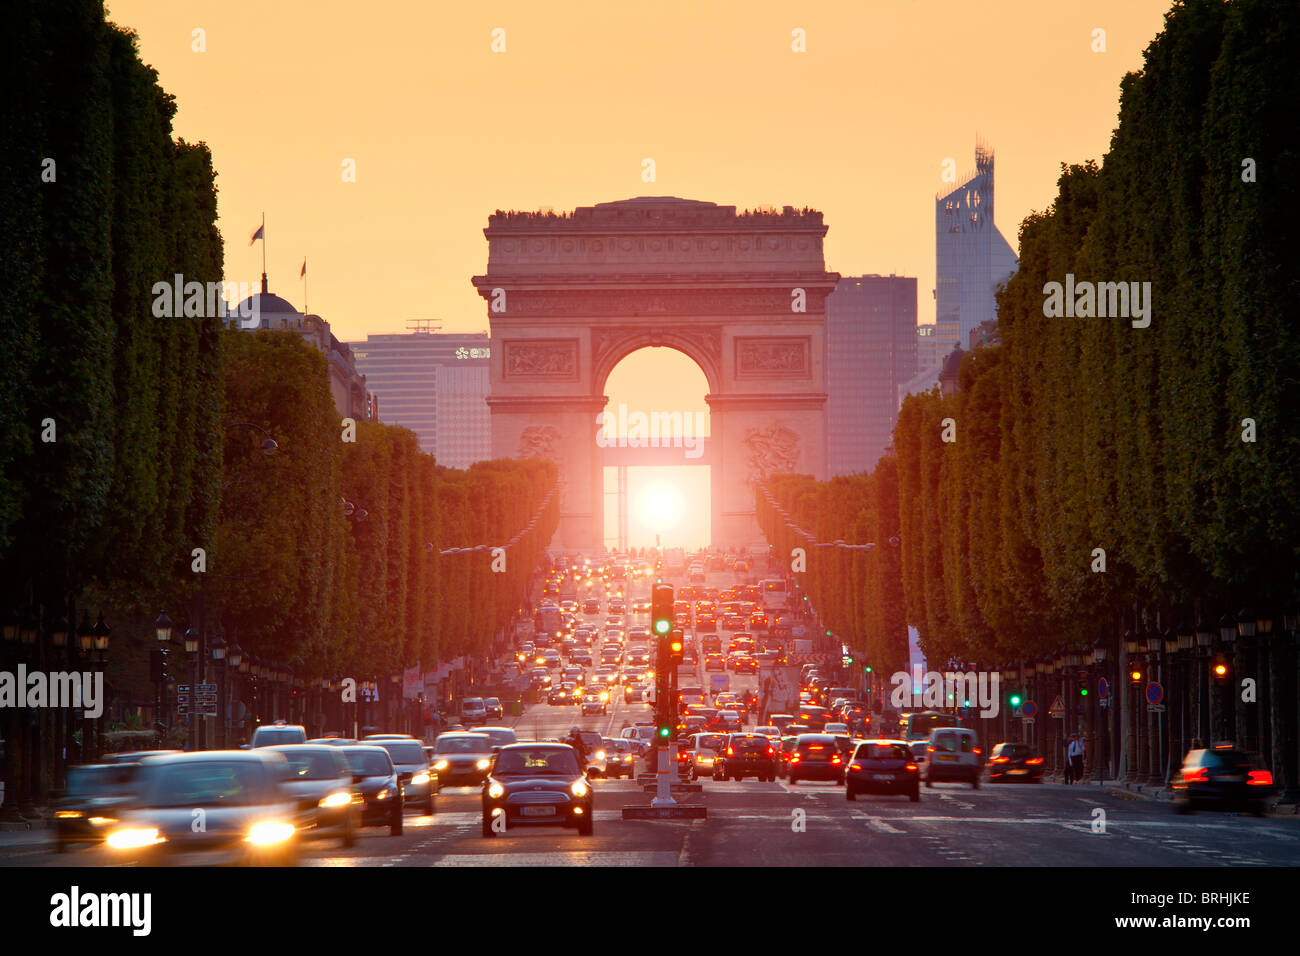 Paris, Champs-Elysees at Sunset - Stock Image